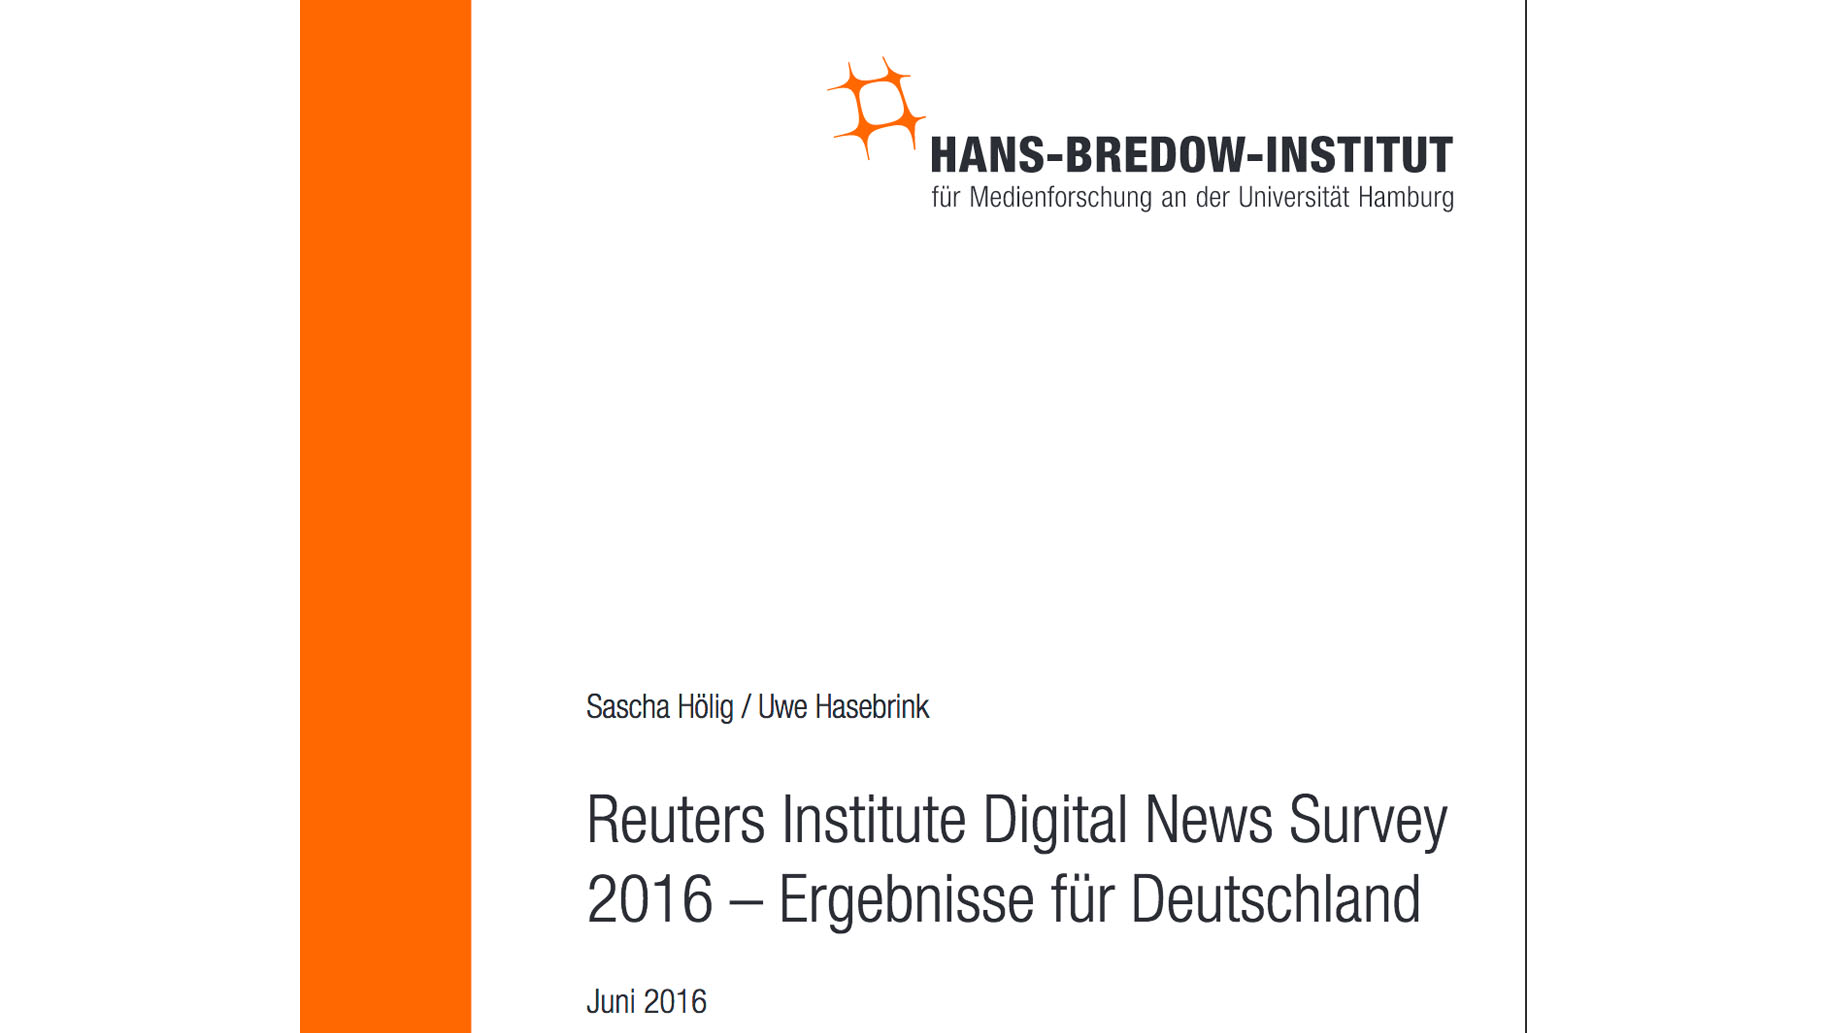 reuters-digital-news-2016-1